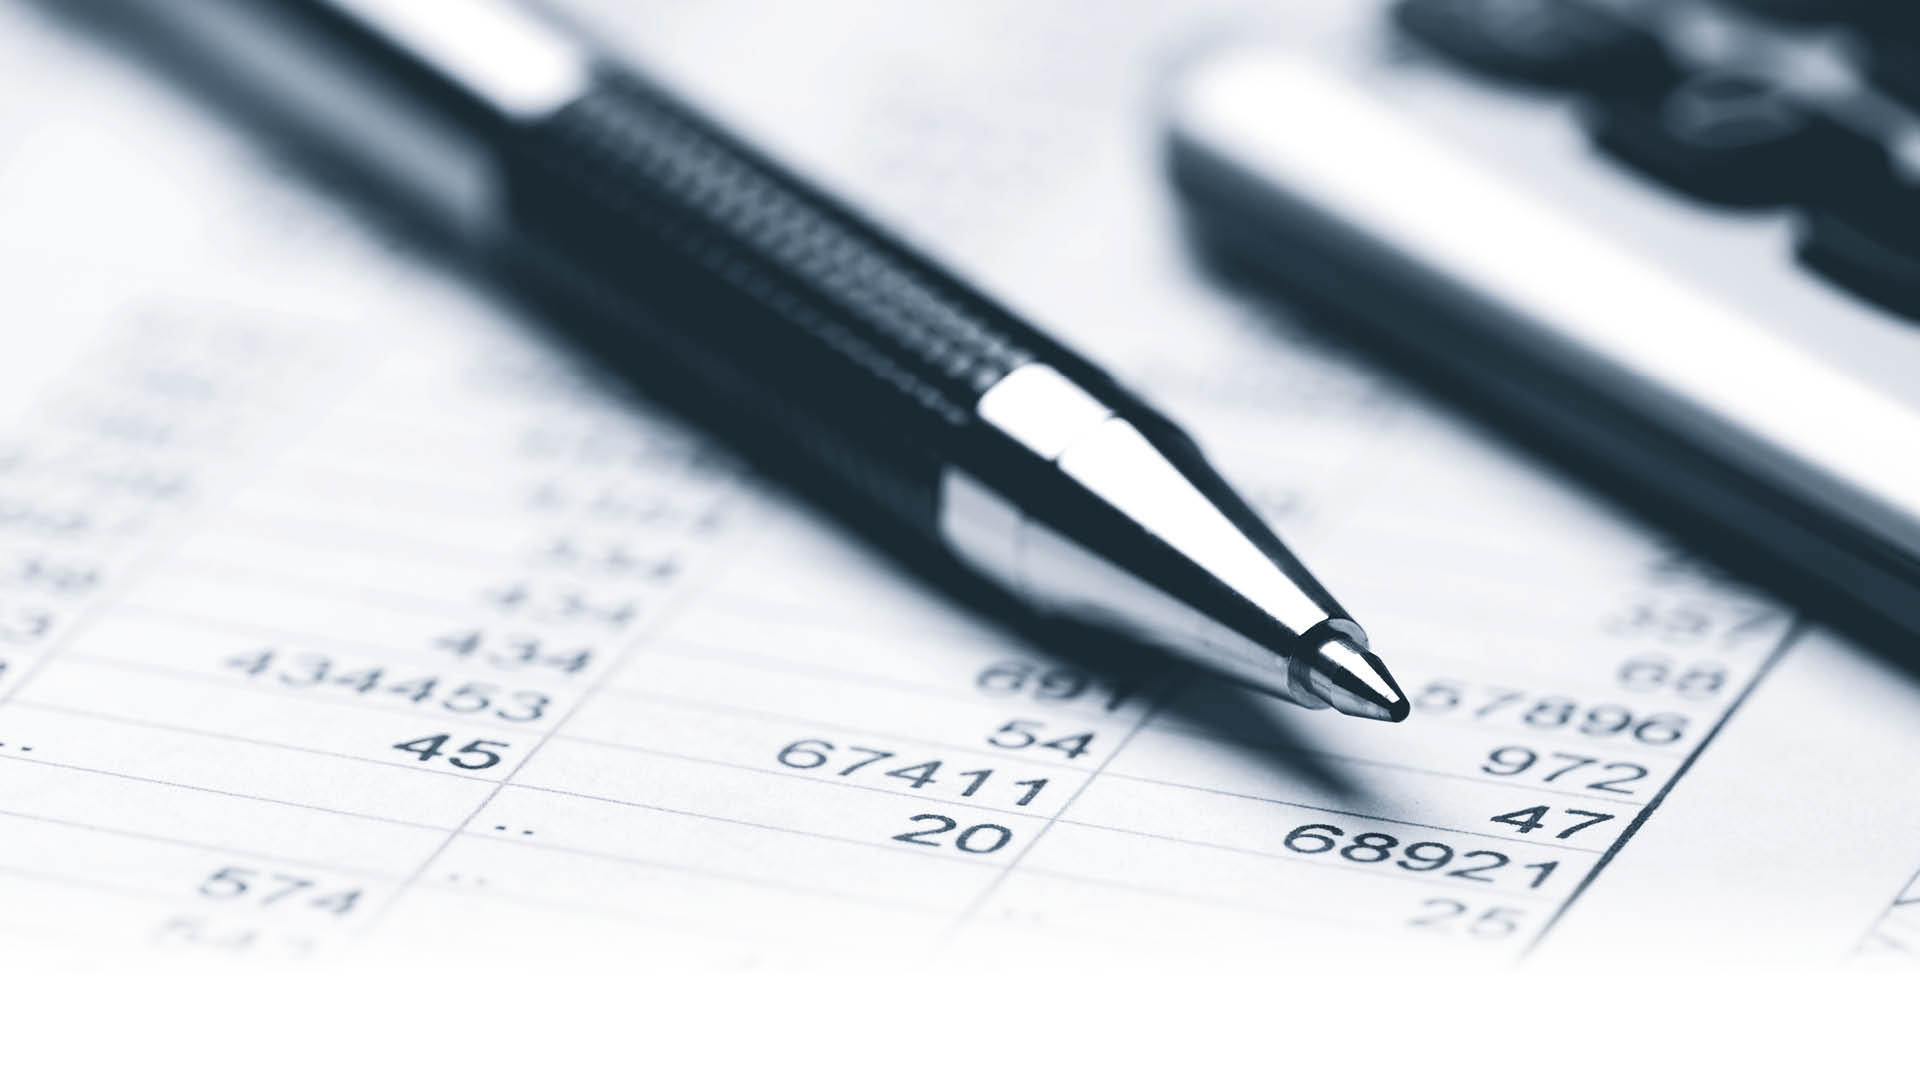 Financial-finance-pen-numbers-ledger